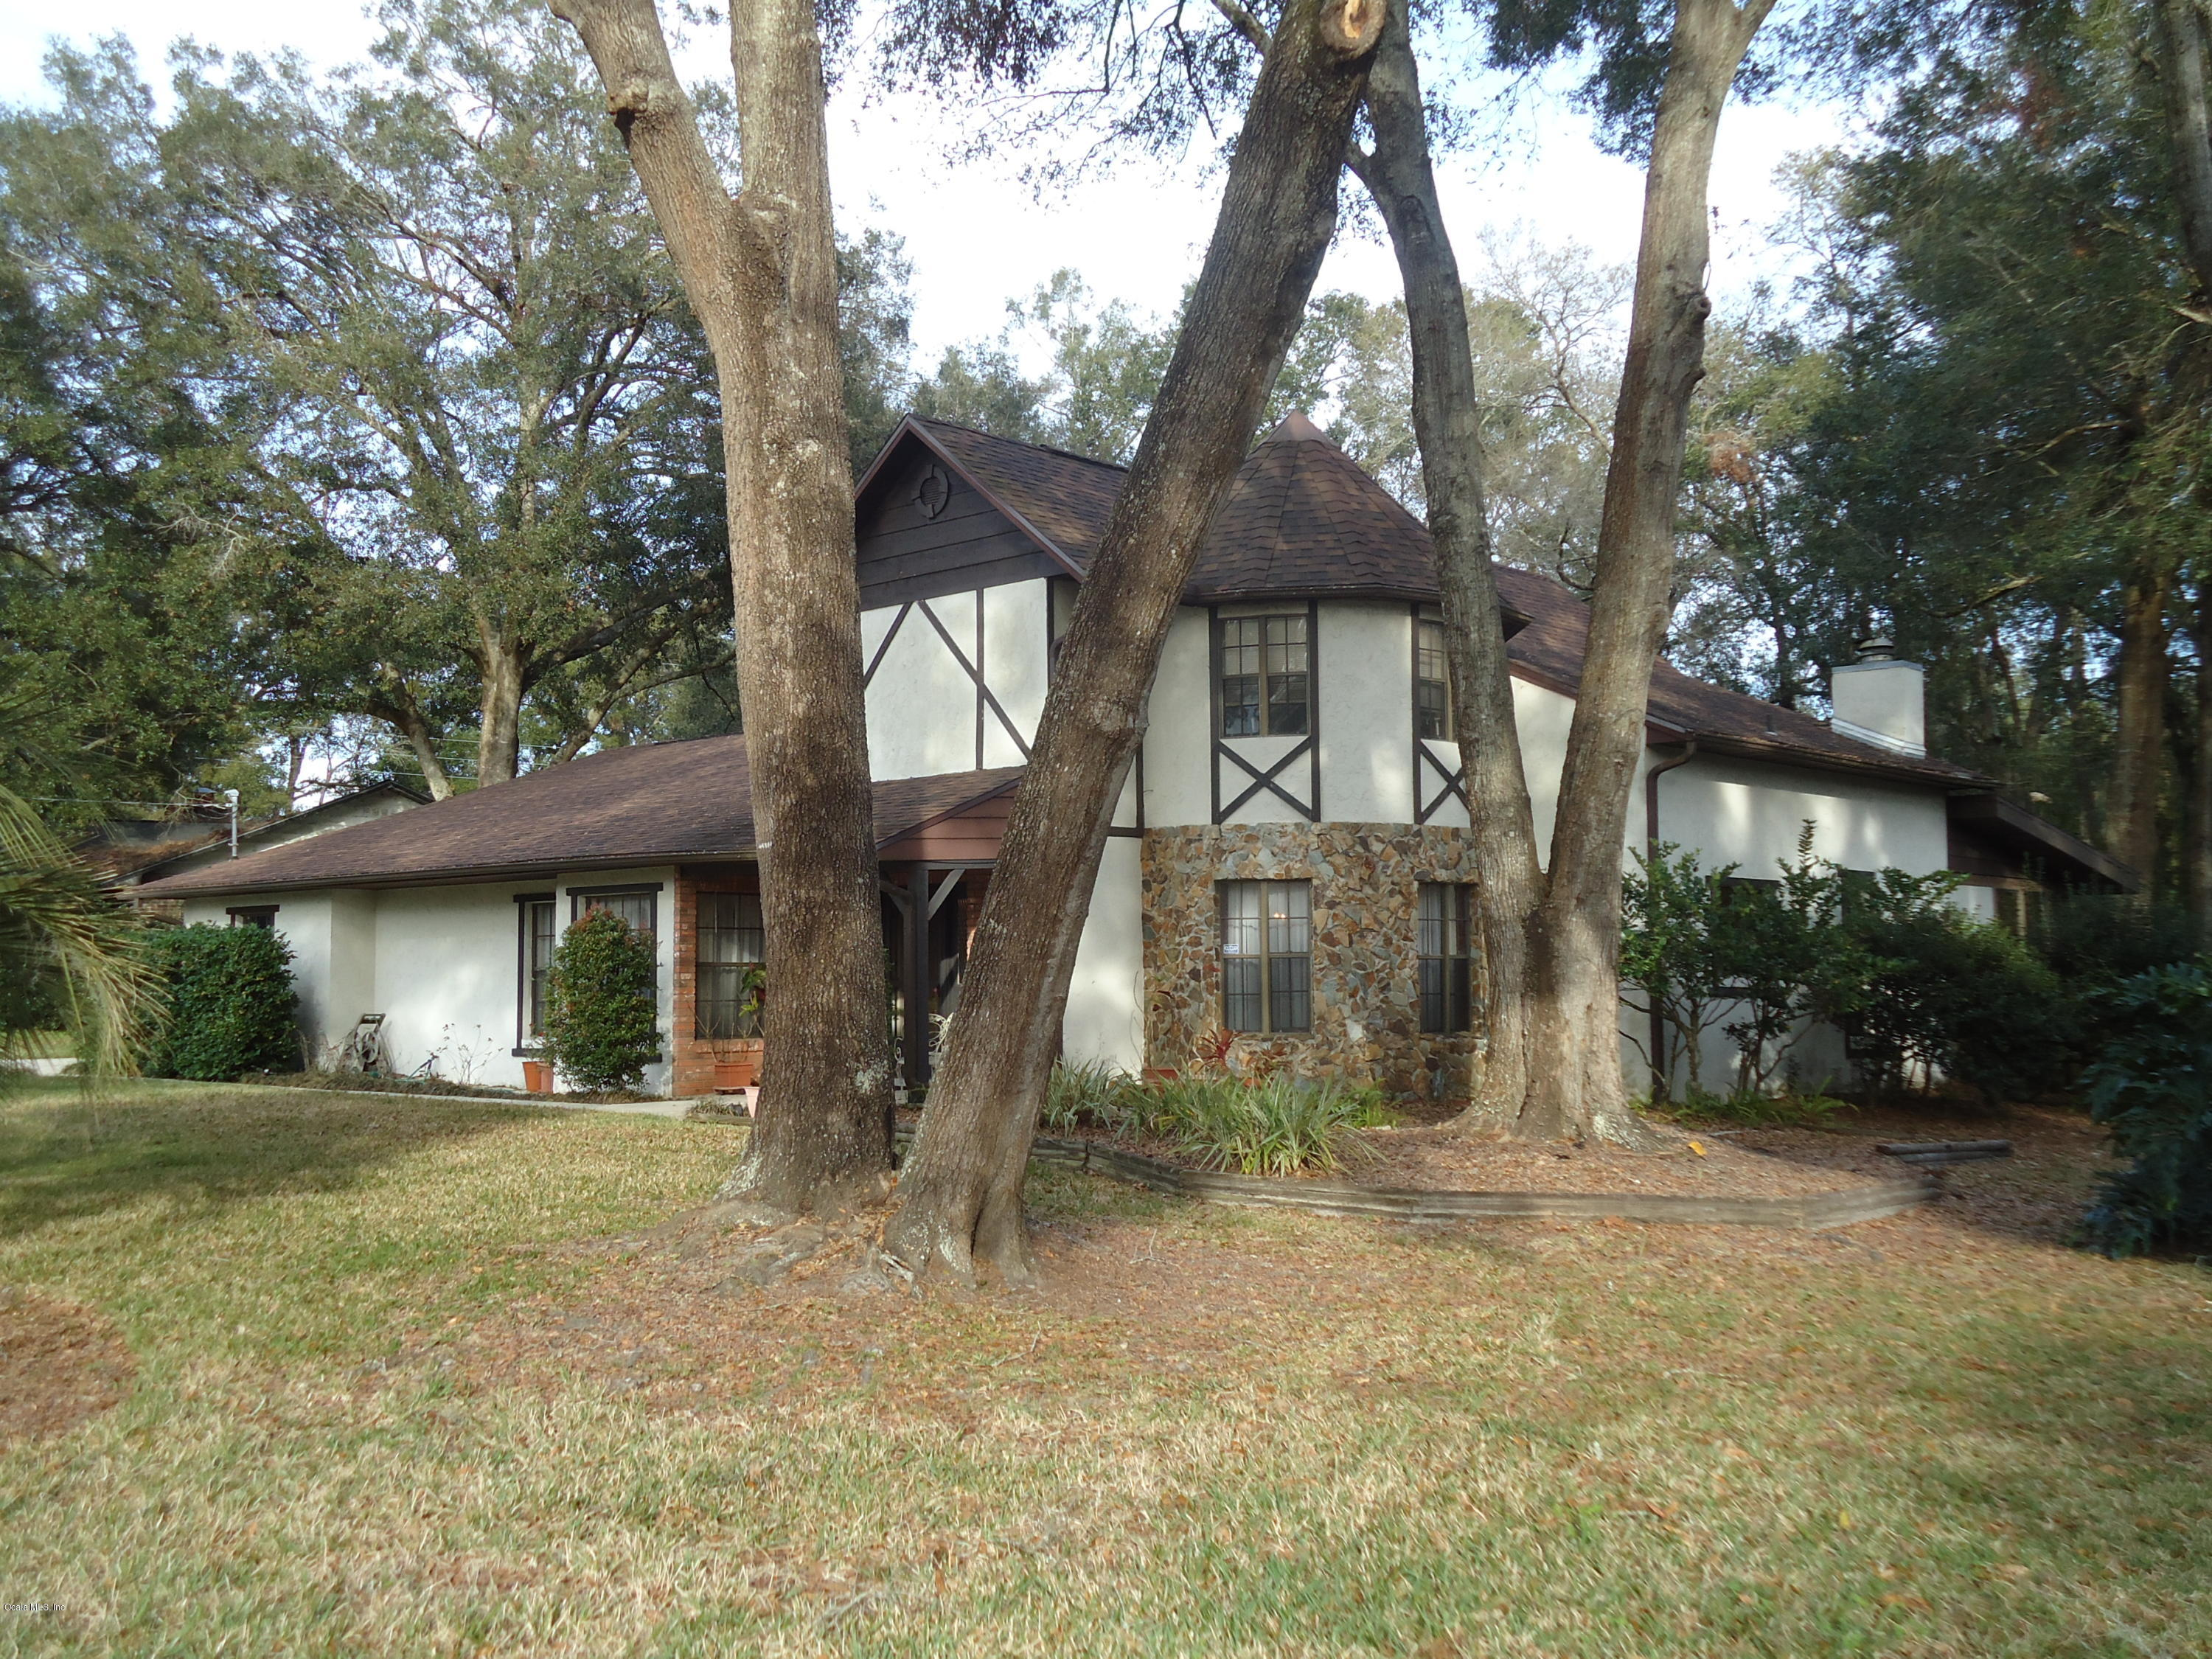 2805 SE 49TH AVENUE, OCALA, FL 34480